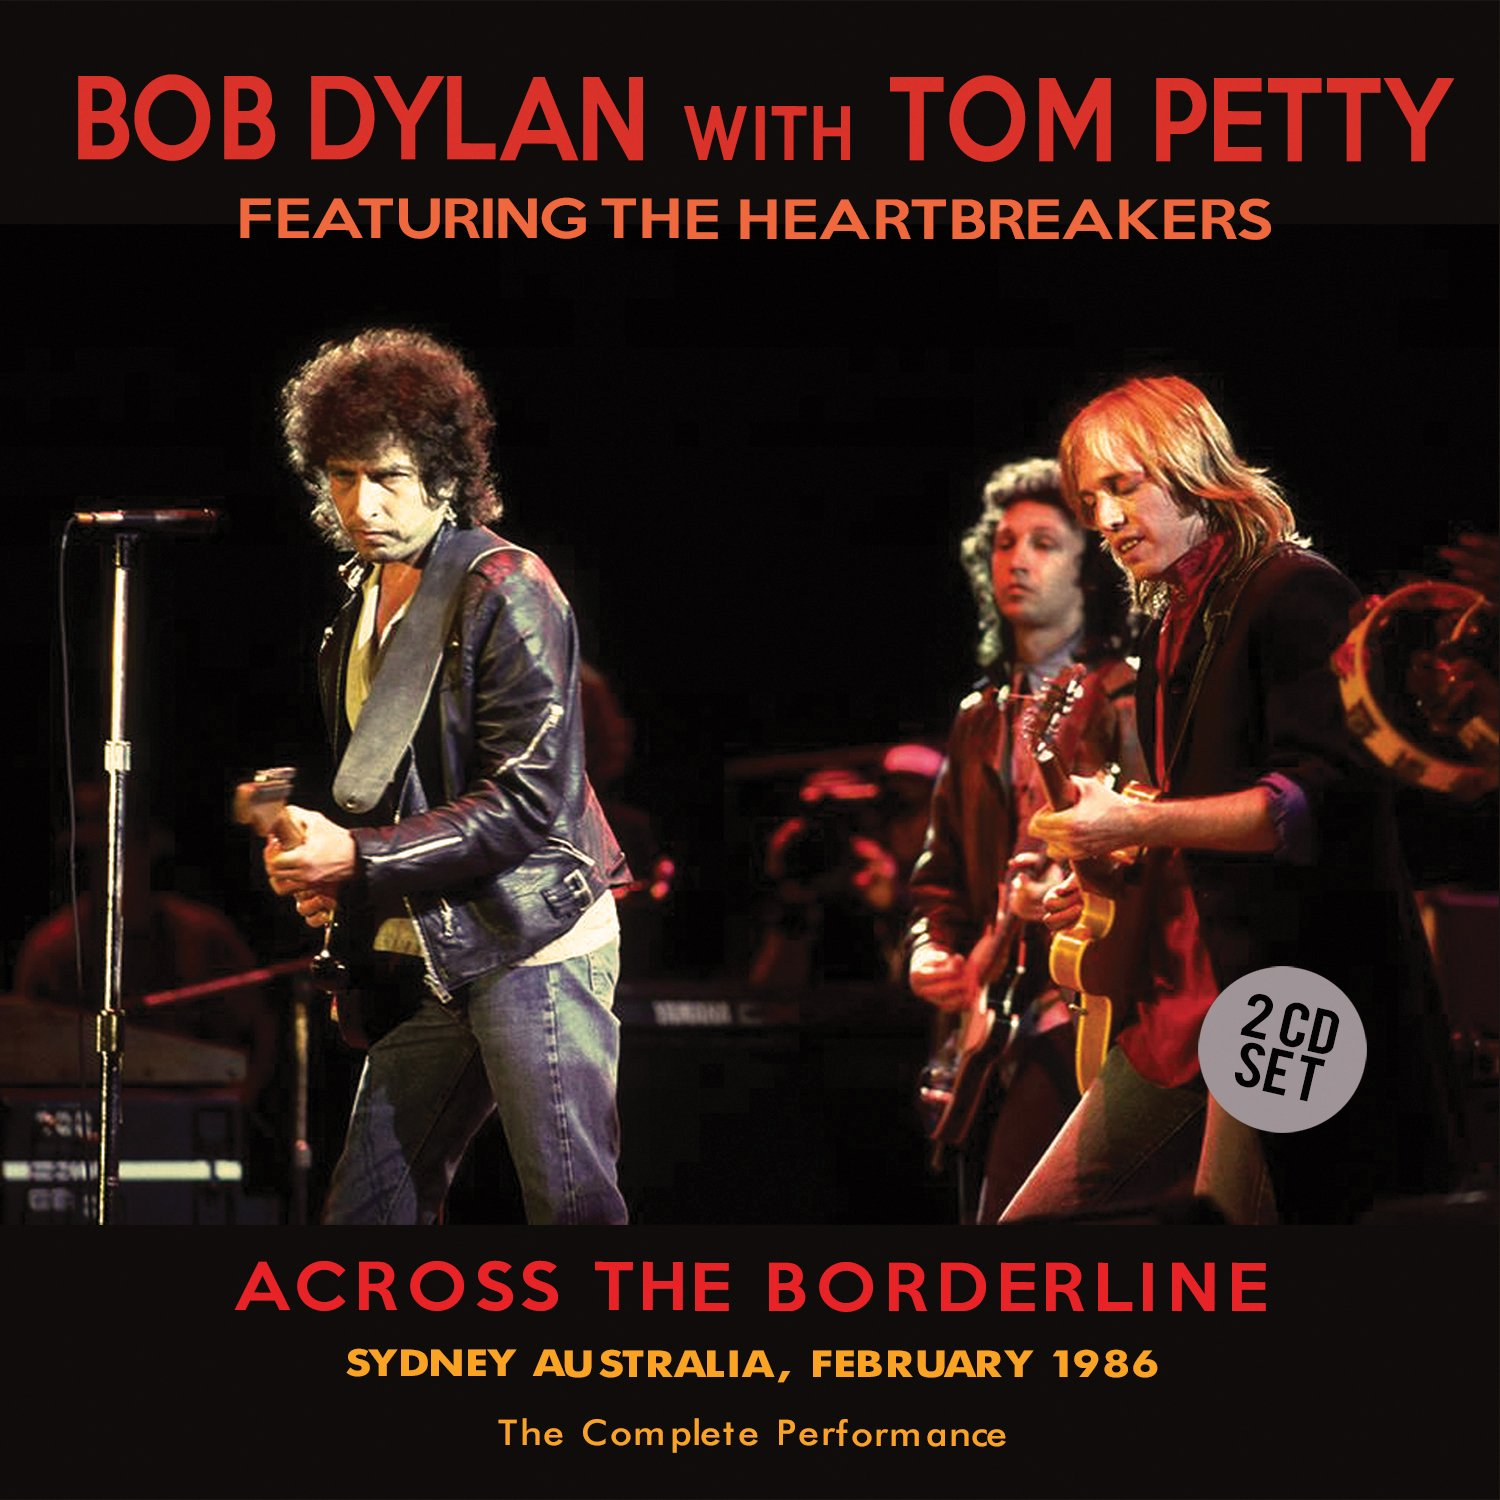 Across The Borderline (2CD) by Bob Dylan, Tom Petty, Bob Dylan (with Tom Petty): Amazon.co.uk: Music